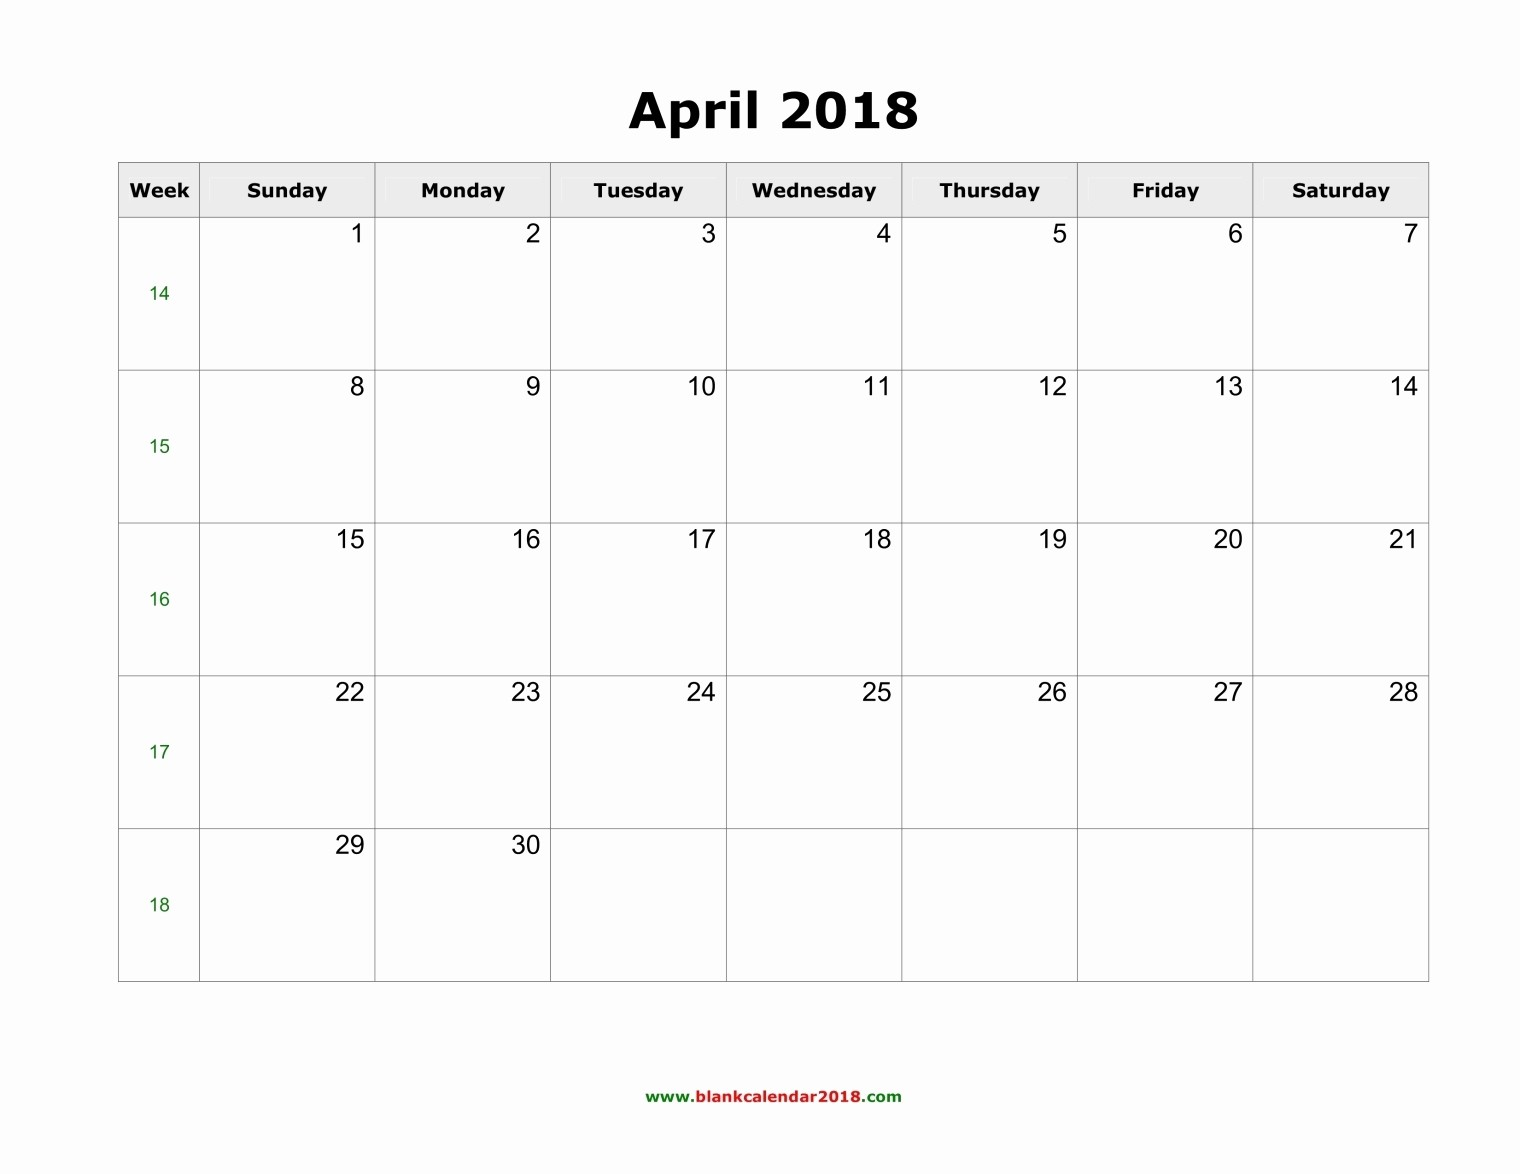 Blank April 2018 Calendar Template Awesome Blank Calendar for April 2018